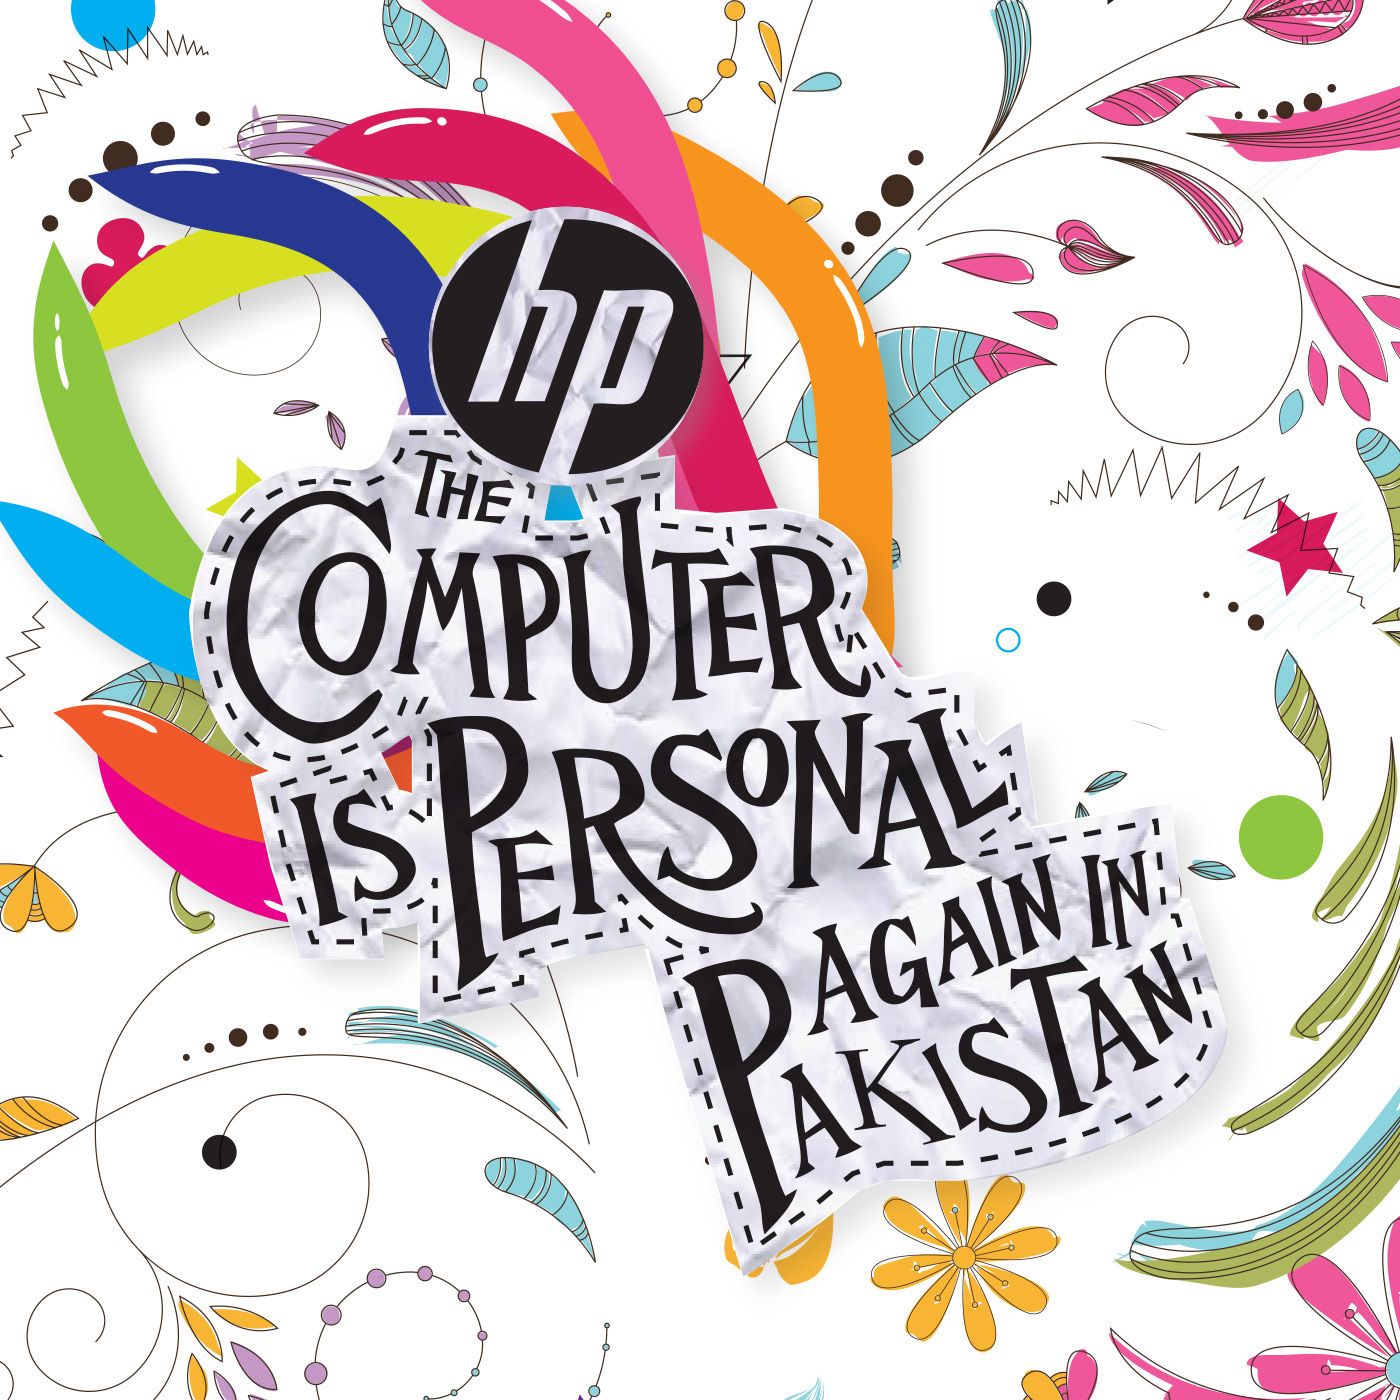 HP Computer is Personal again in Pakistan